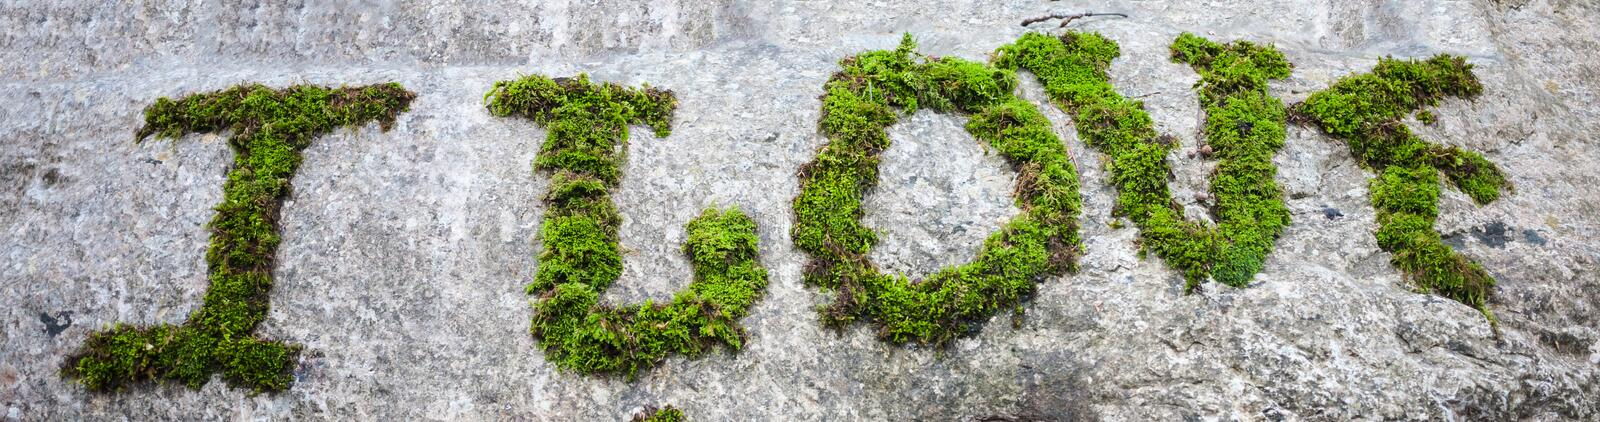 Inscription with moss on the stone stock image